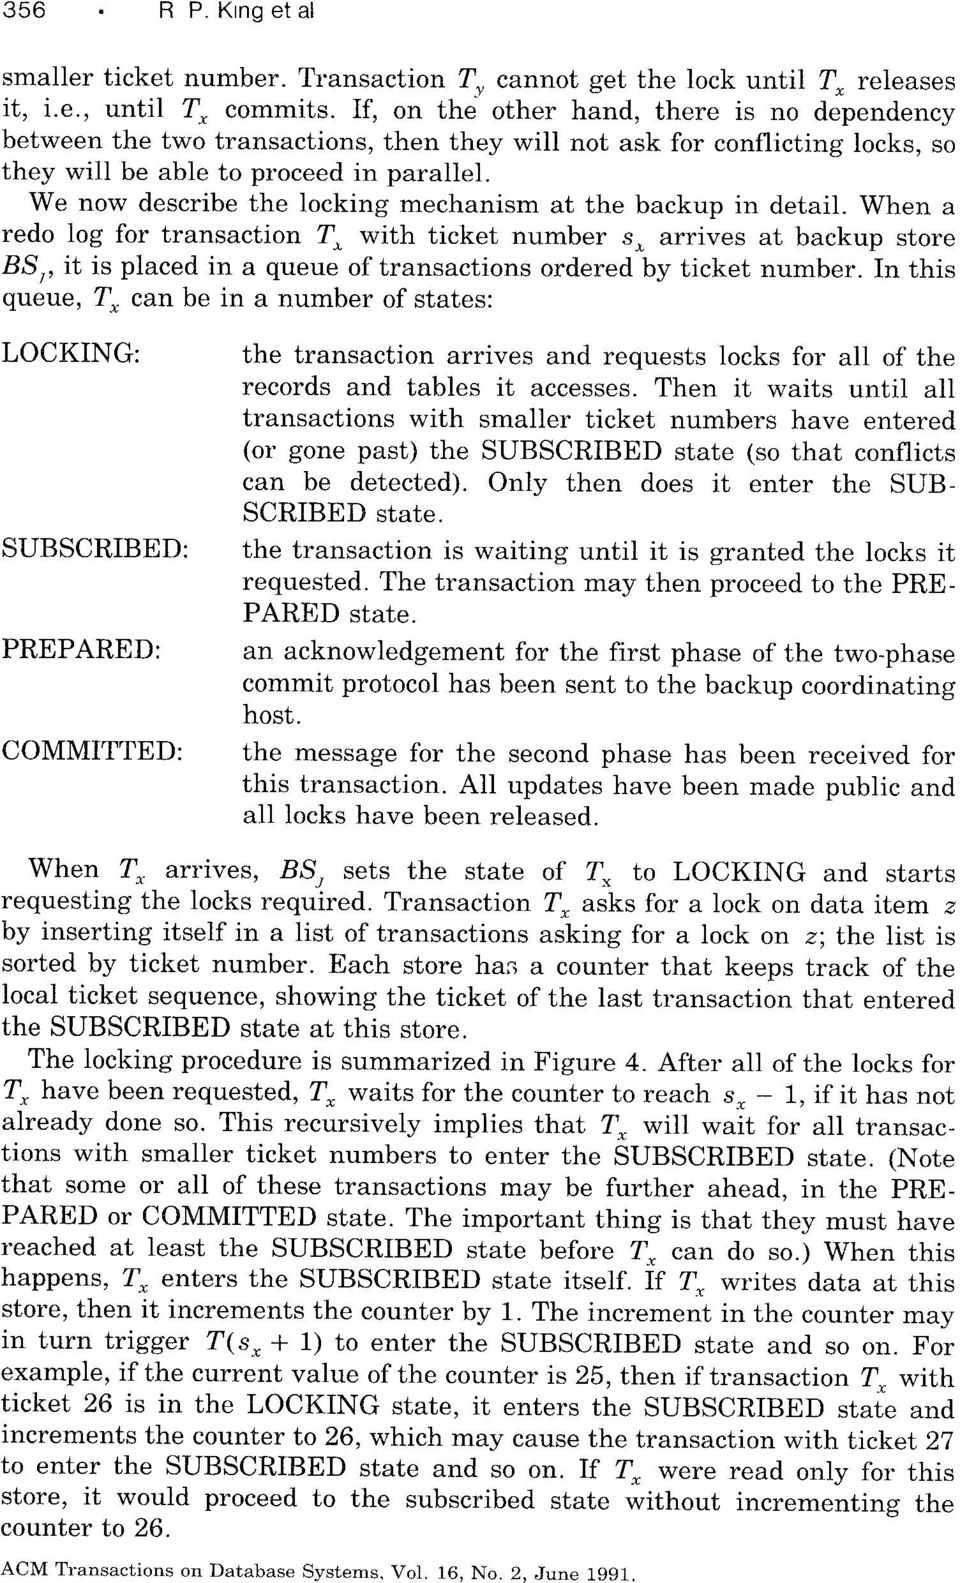 We now describe the locking mechanism at the backup in detail. When a redo log for transaction T.